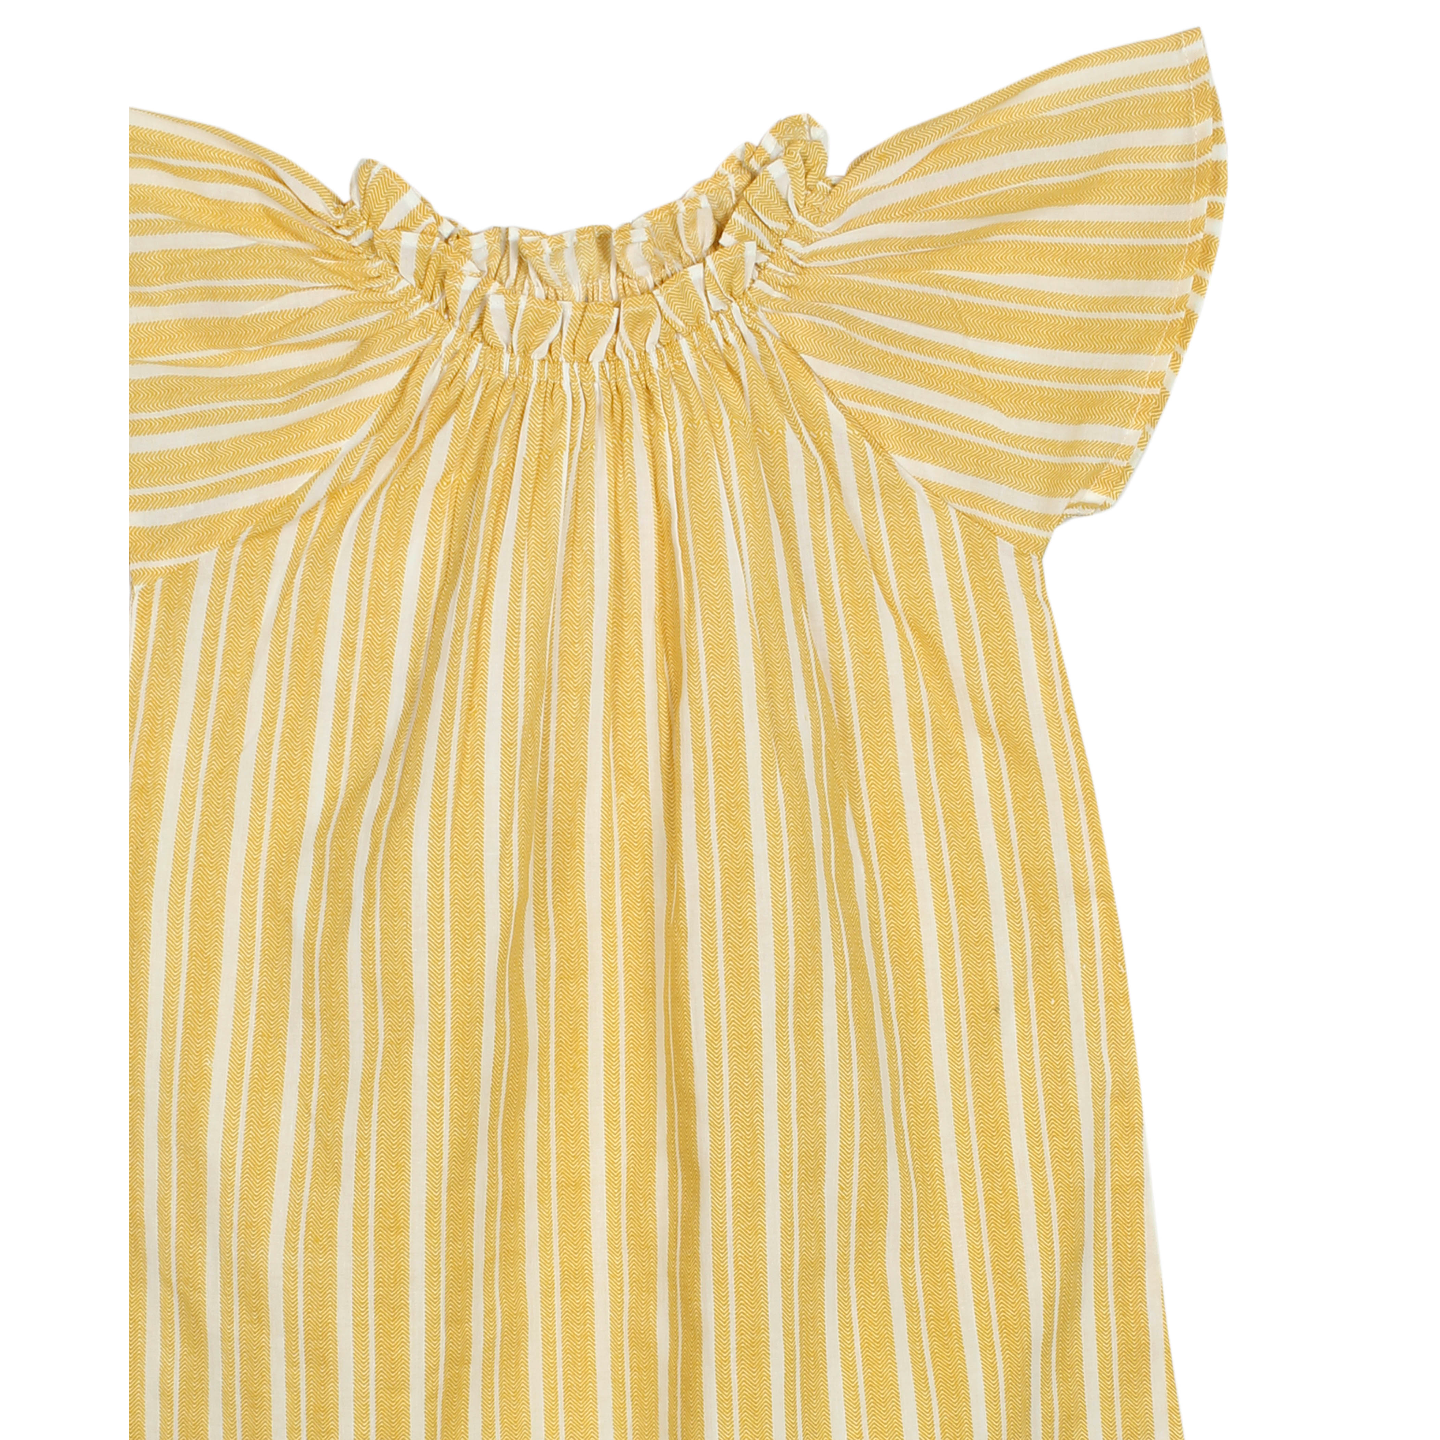 French yellow night dress